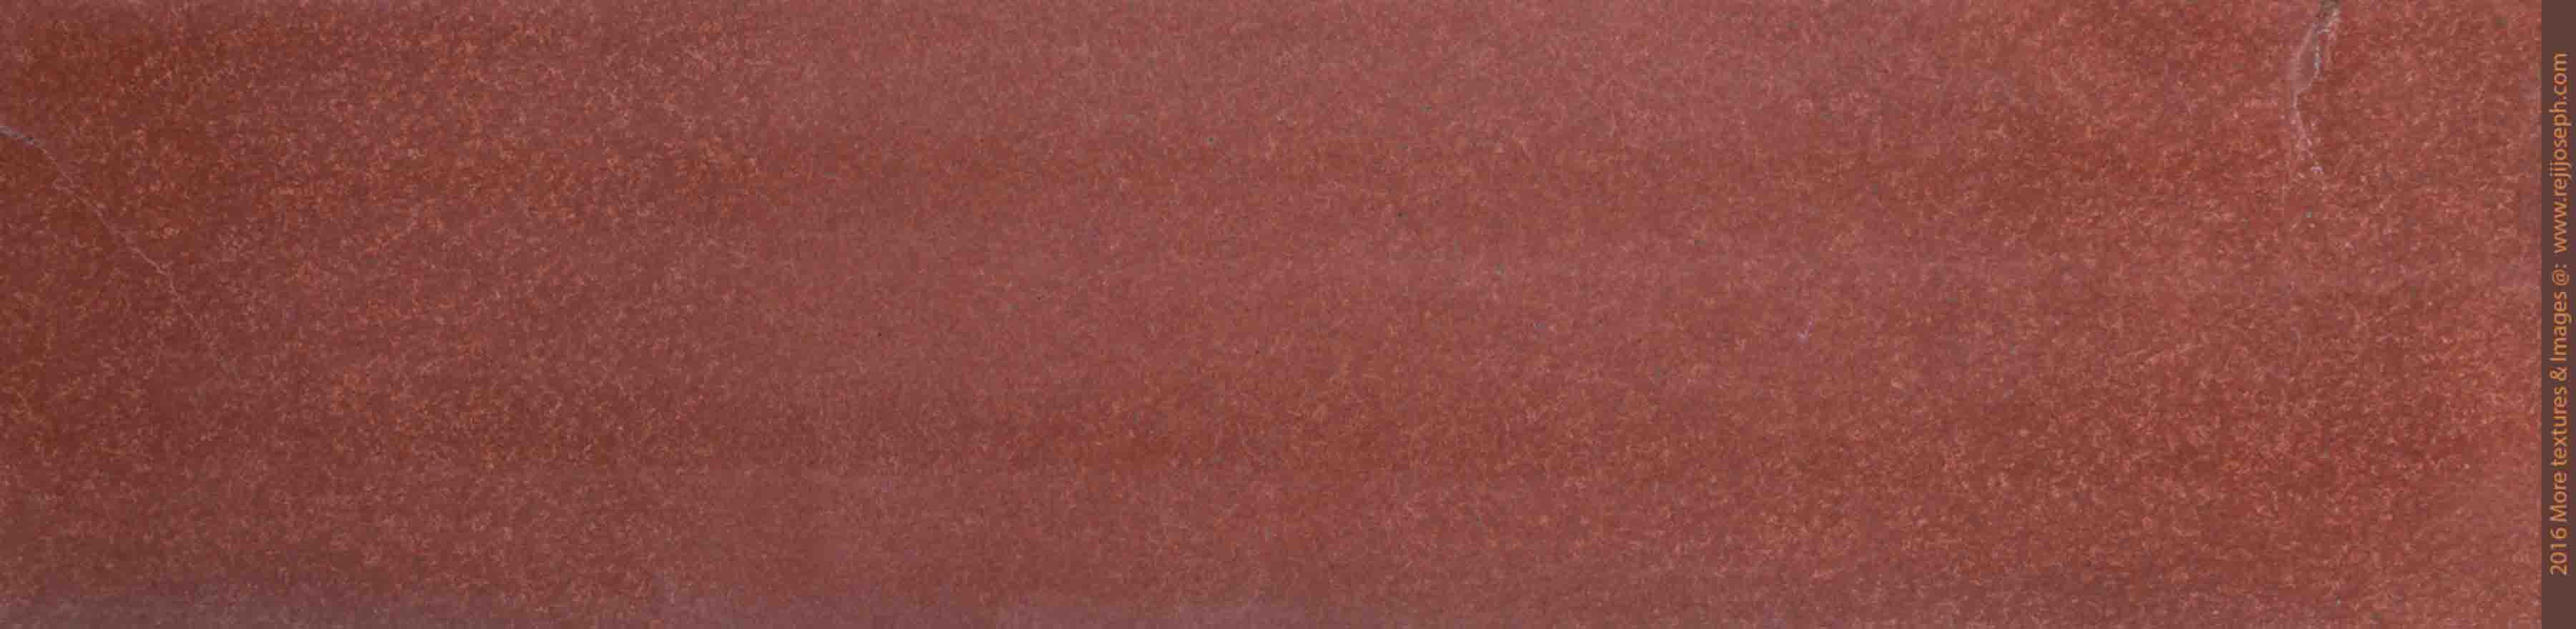 Marbles Granites Texture Lakha Red 00010